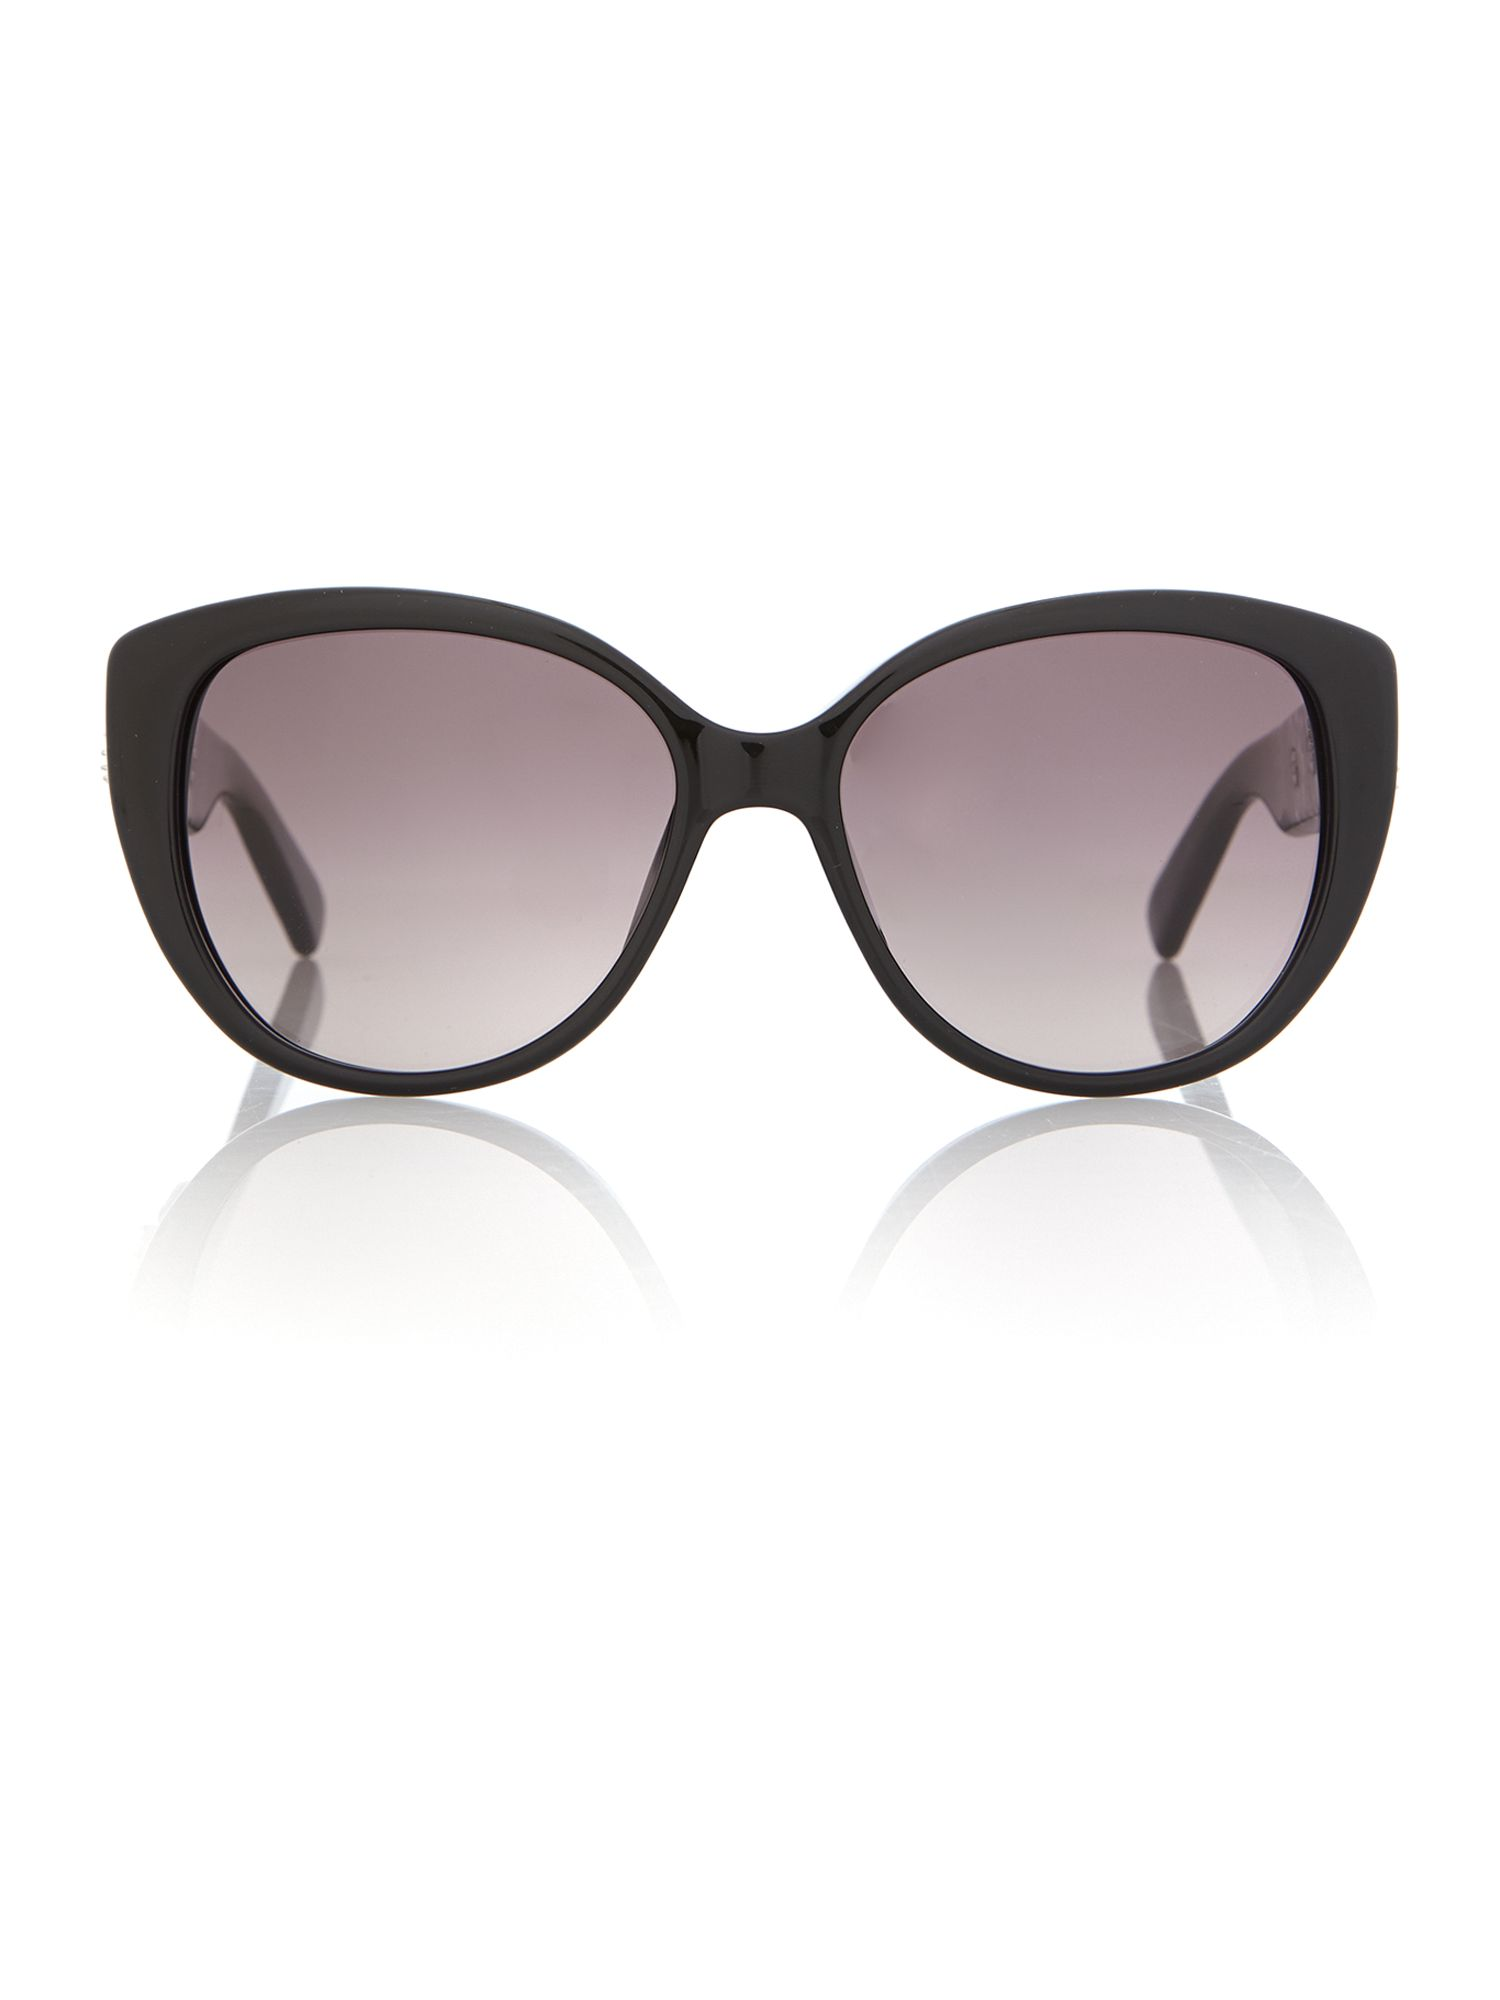 Diormystere ladies rectangle sunglasses